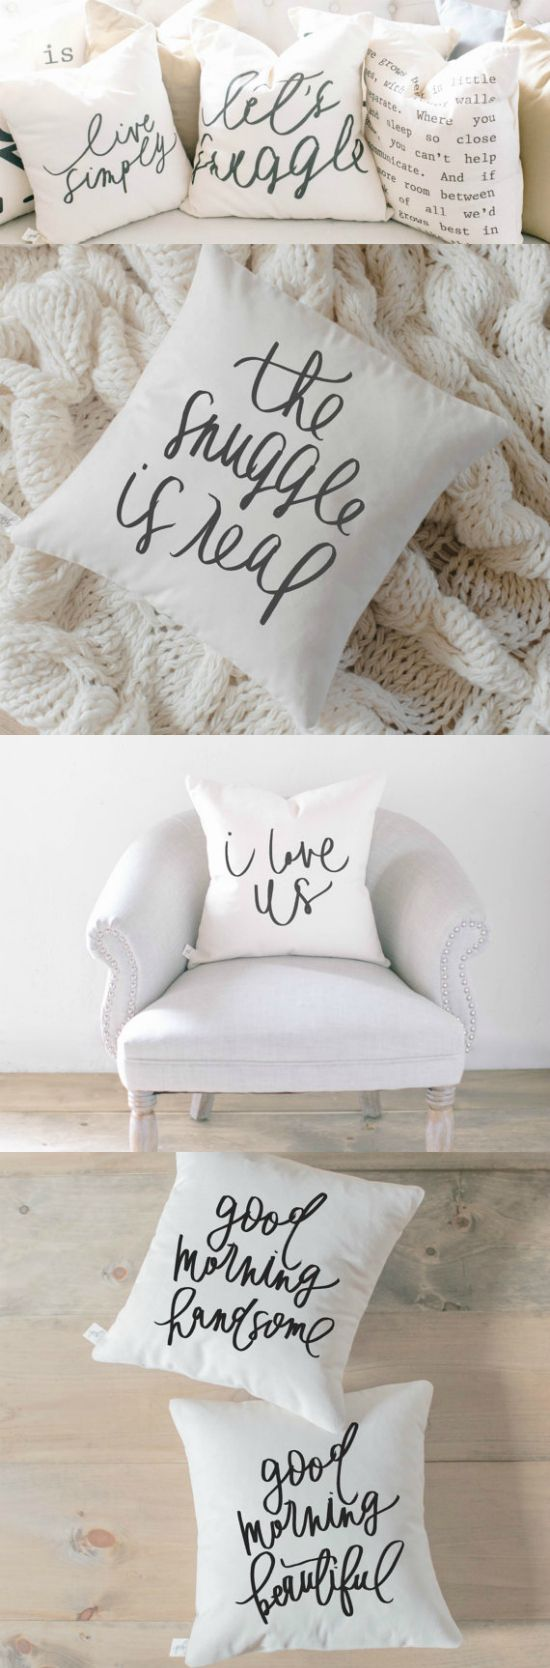 25 best ideas about throw pillows bed on pinterest dorm